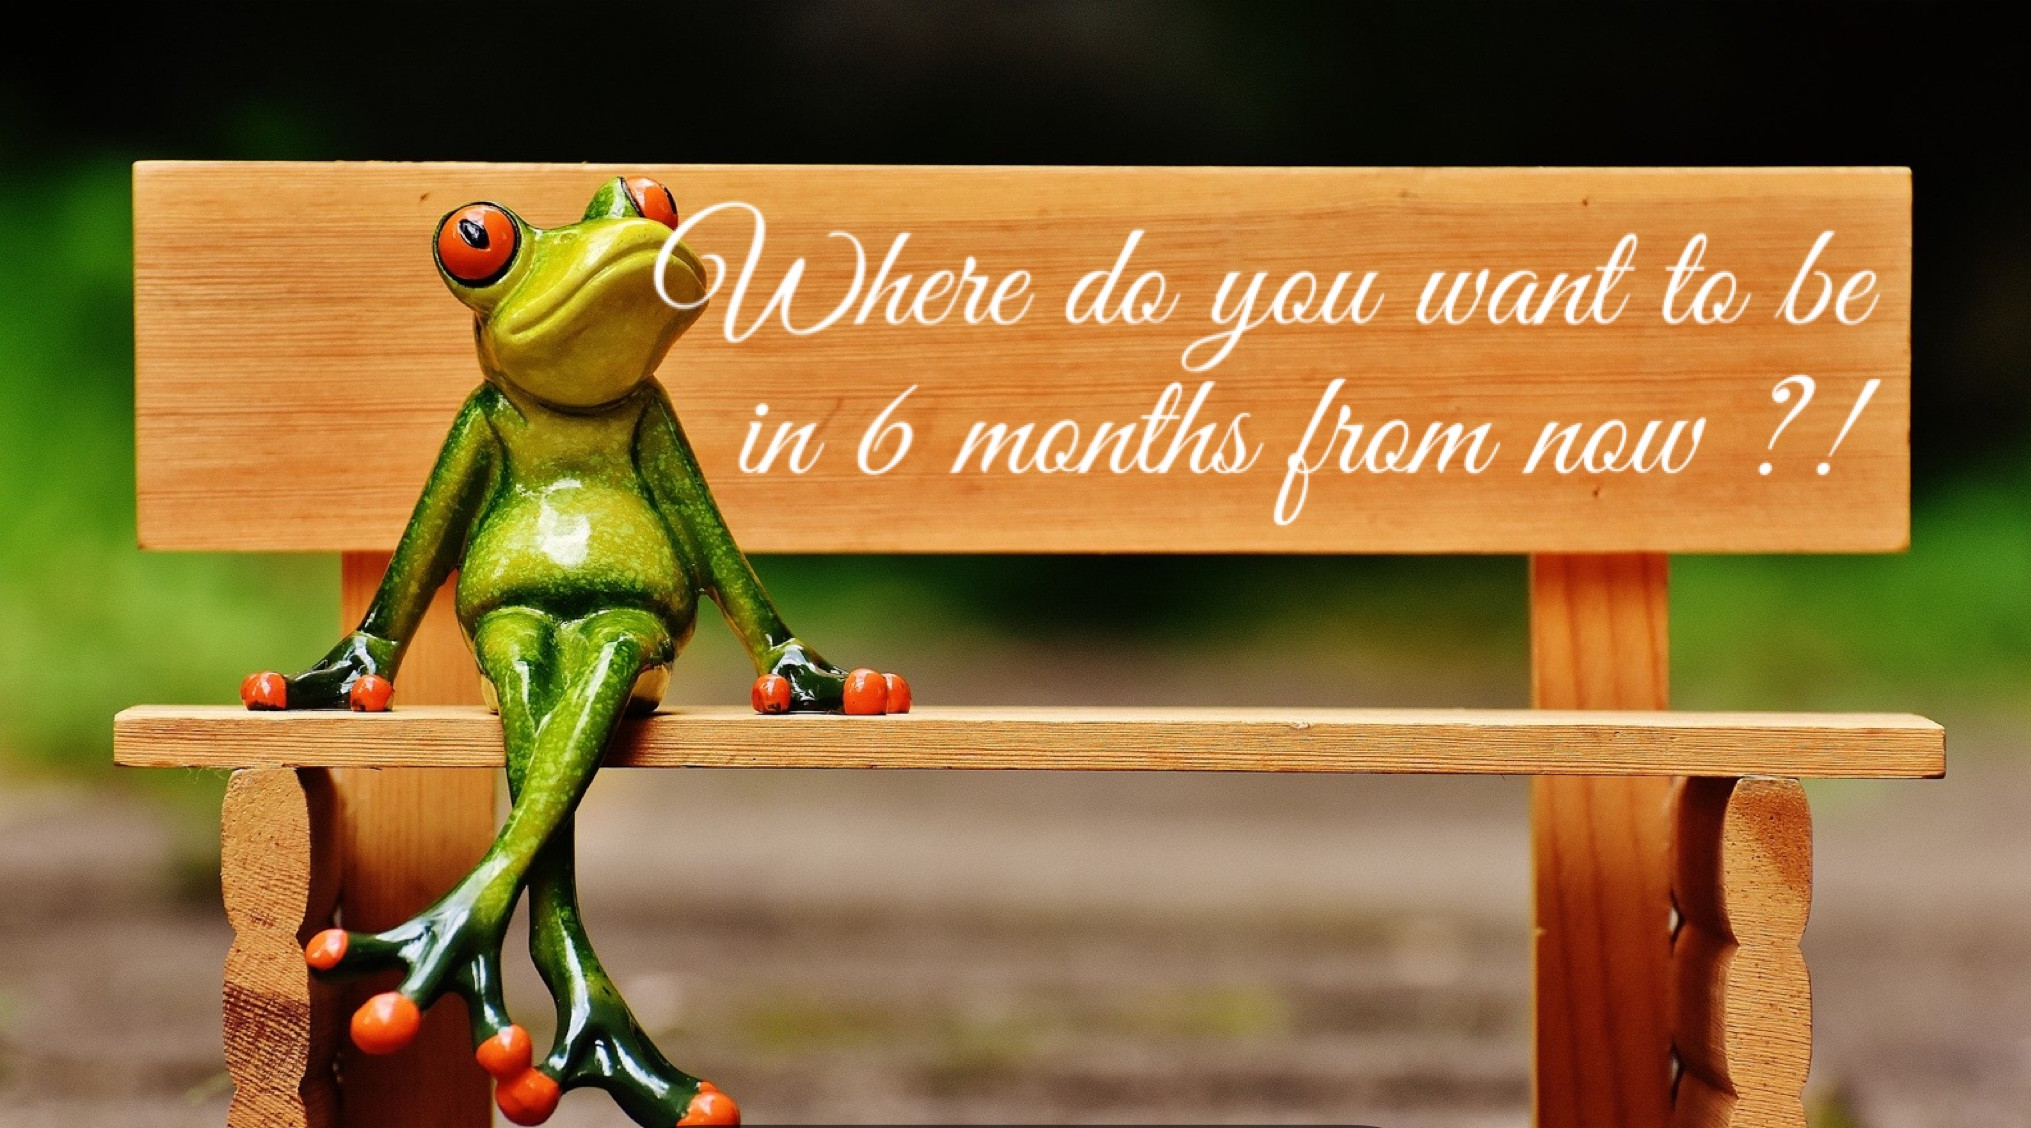 6 months health coaching sessions